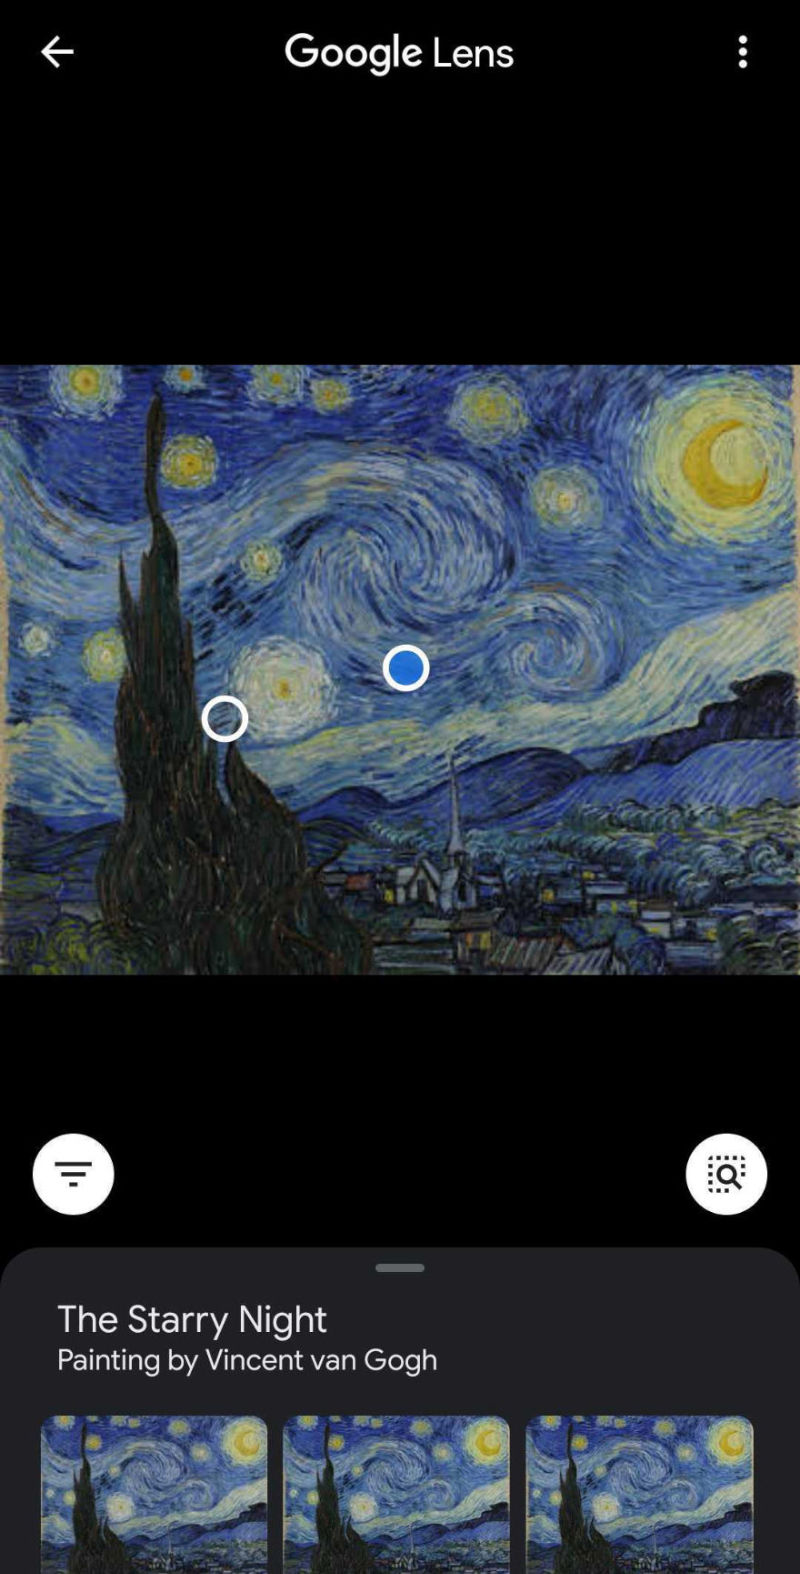 The Google Lens app can help you find similar images